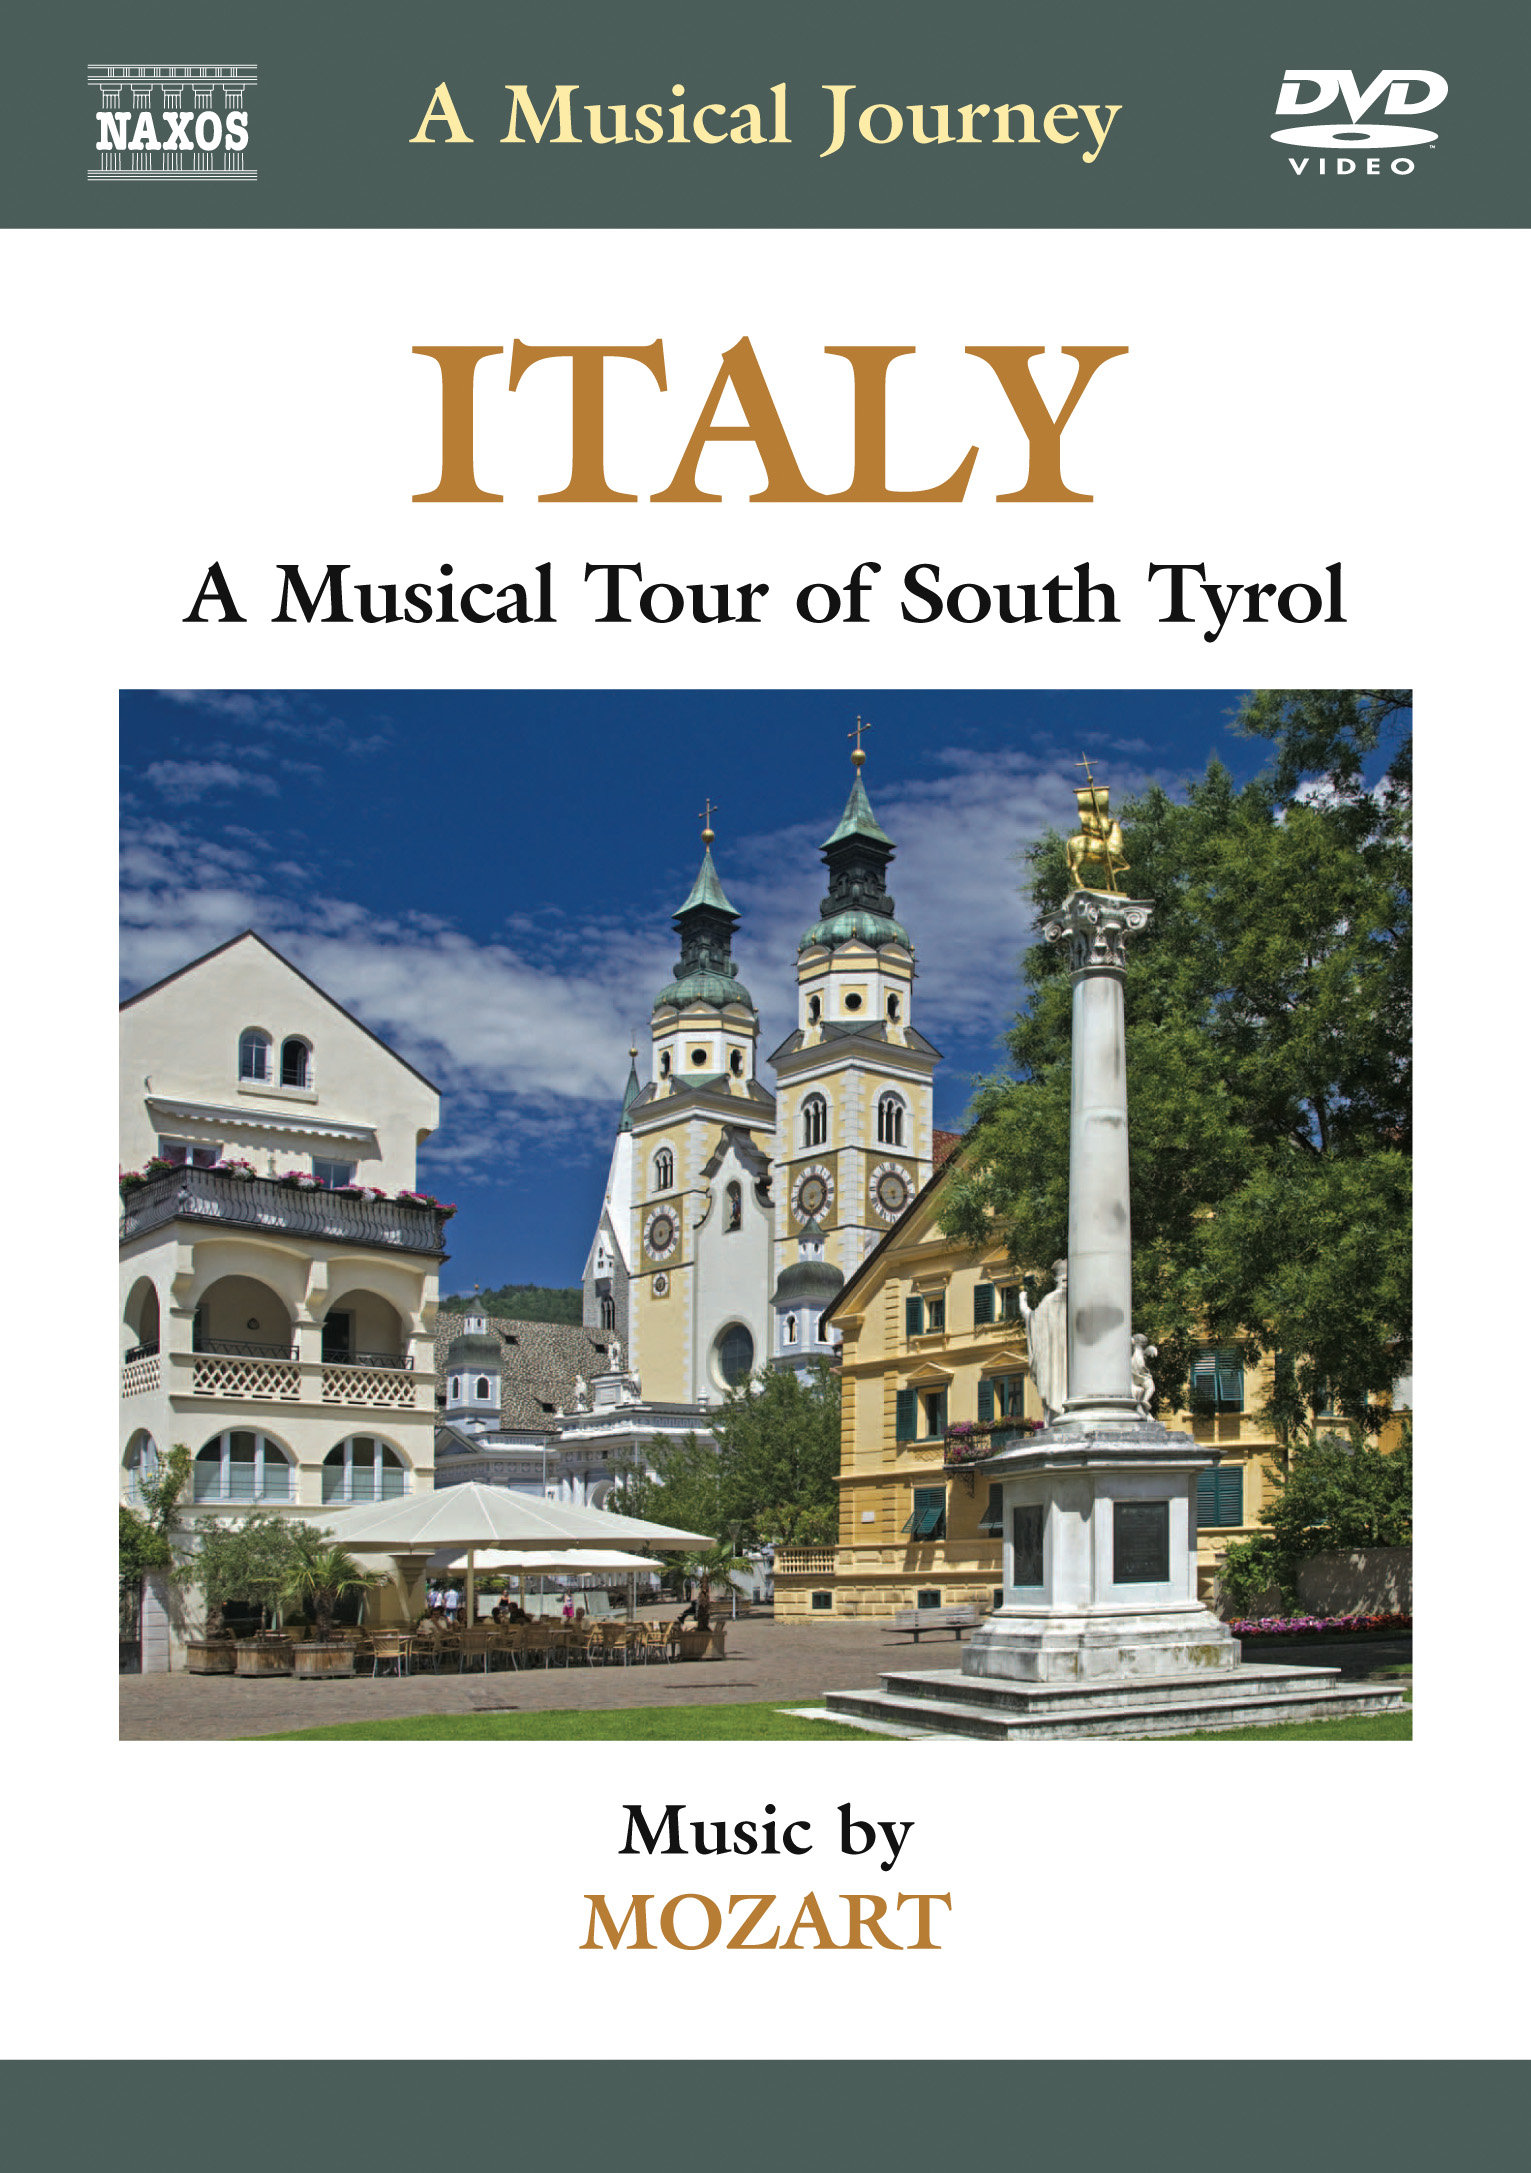 A Musical Journey: Italy - A Musical Tour of South Tyrol (Mozart)